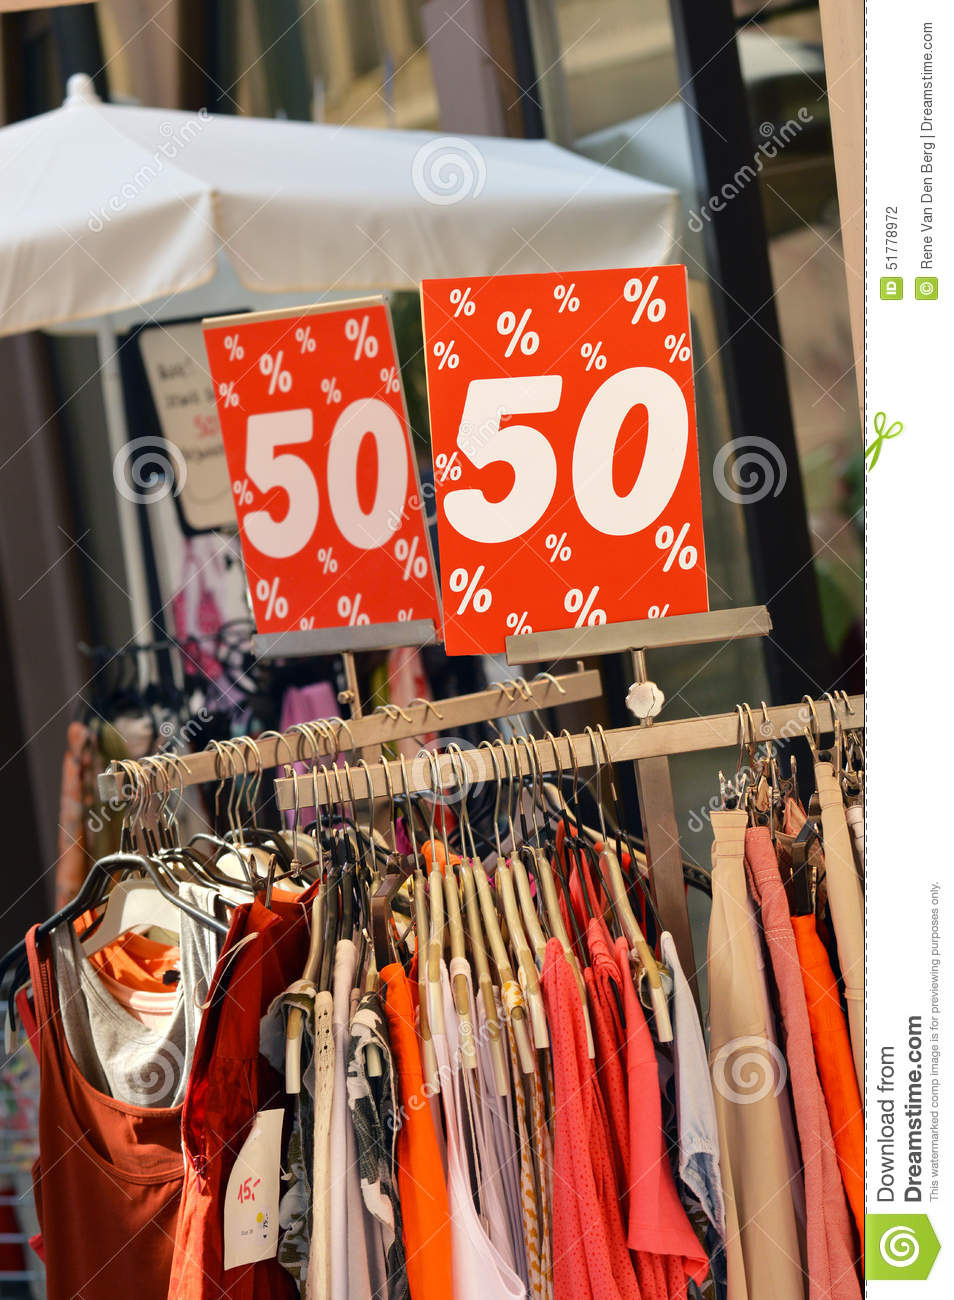 Cheap uk clothing stores